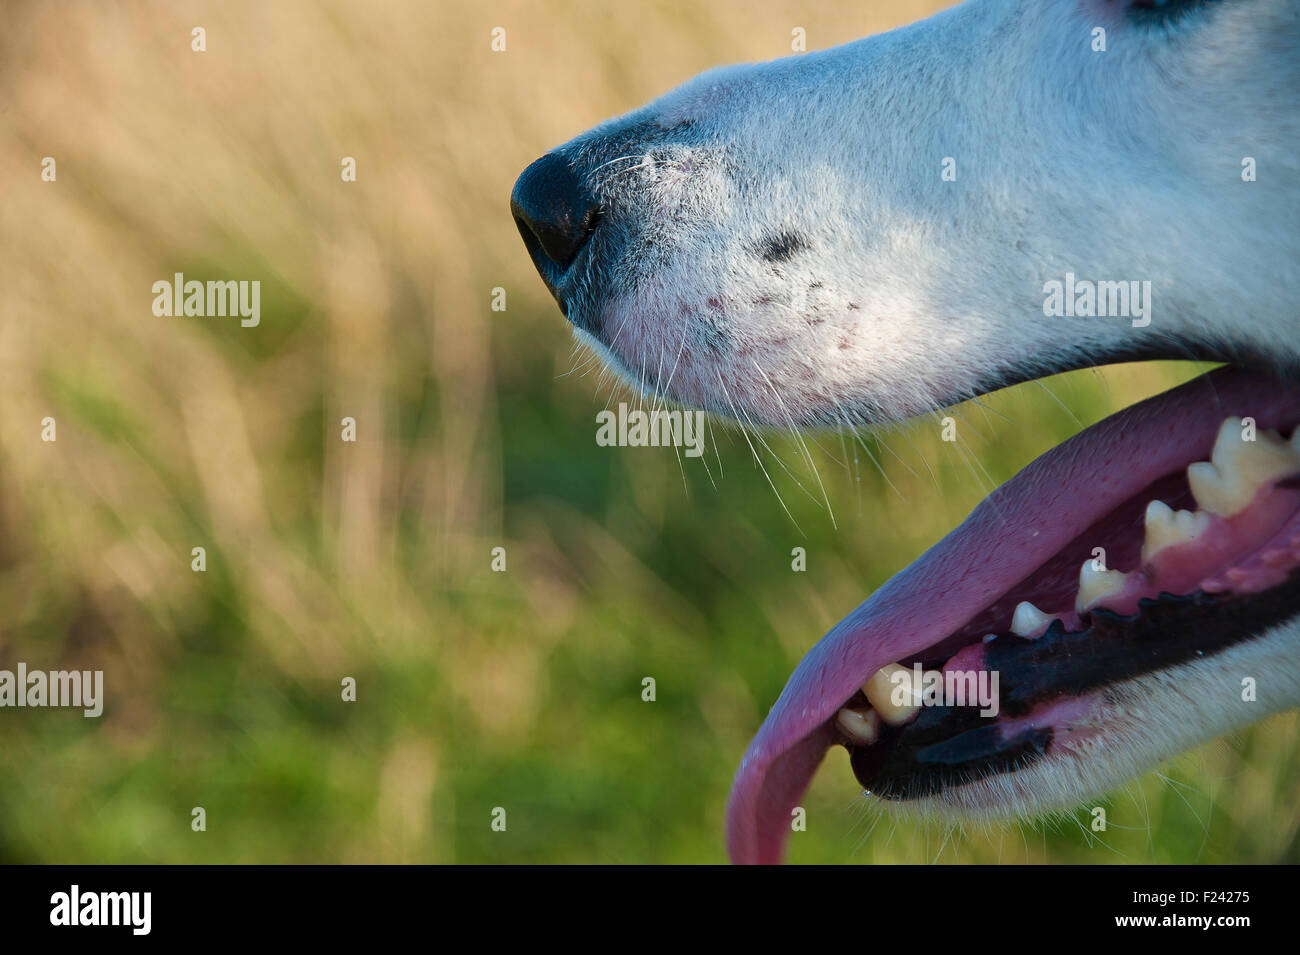 dog's mouth, teeth, nose, tongue, eyes, jaw, canines and nostrils in profile - Stock Image